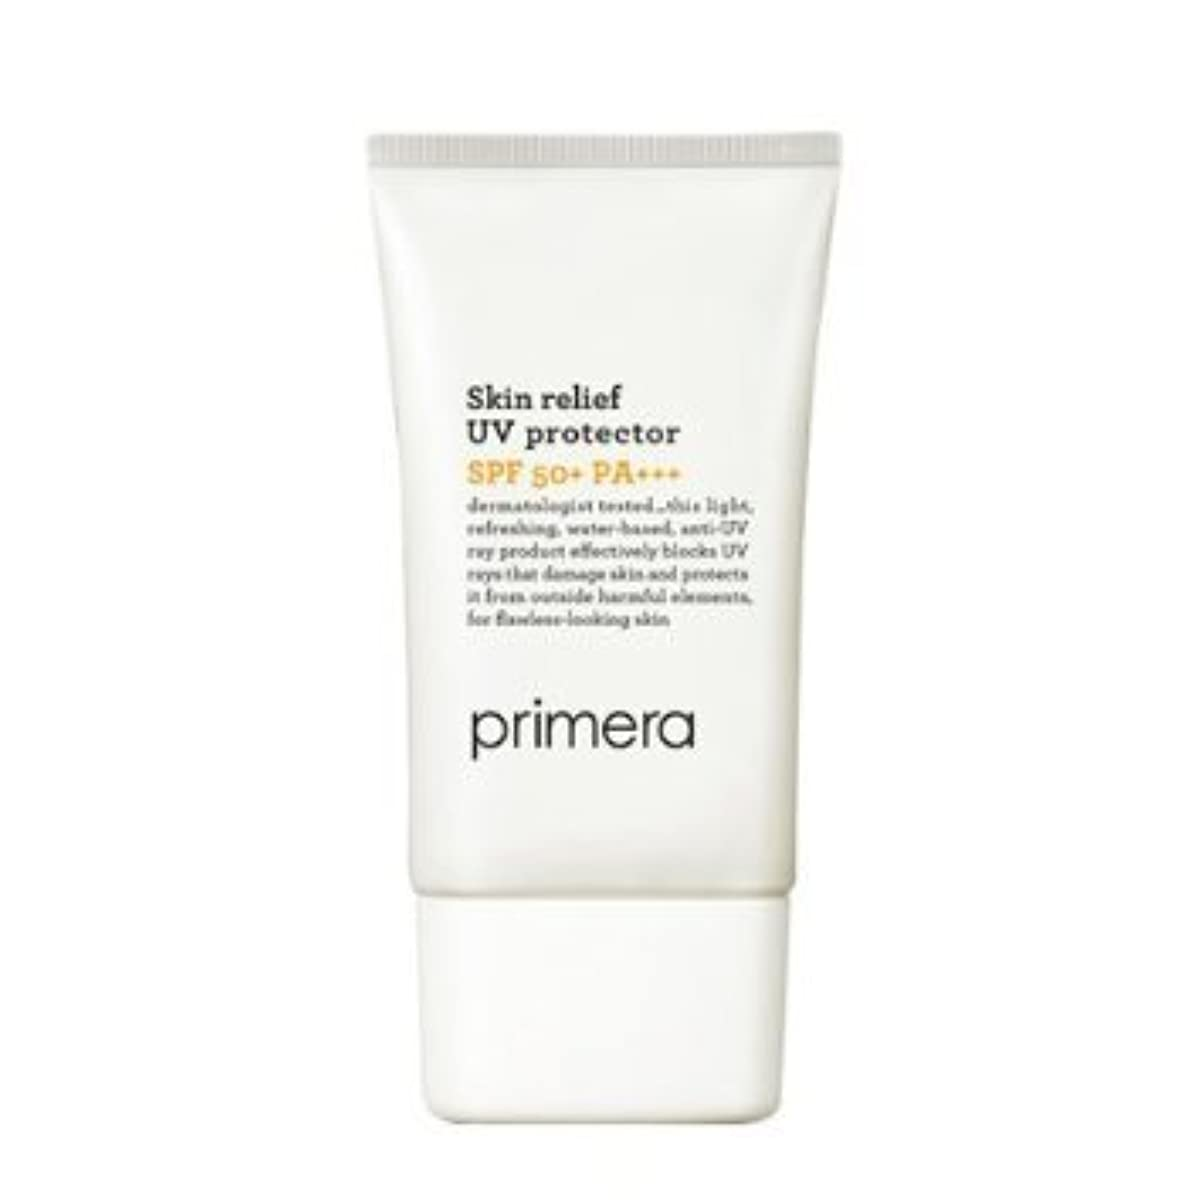 静かにデザイナー驚かすKorean Cosmetics, Amorepacific Primera Skin Relief UV Protector SPF50+ PA+++ 50ml[行輸入品]